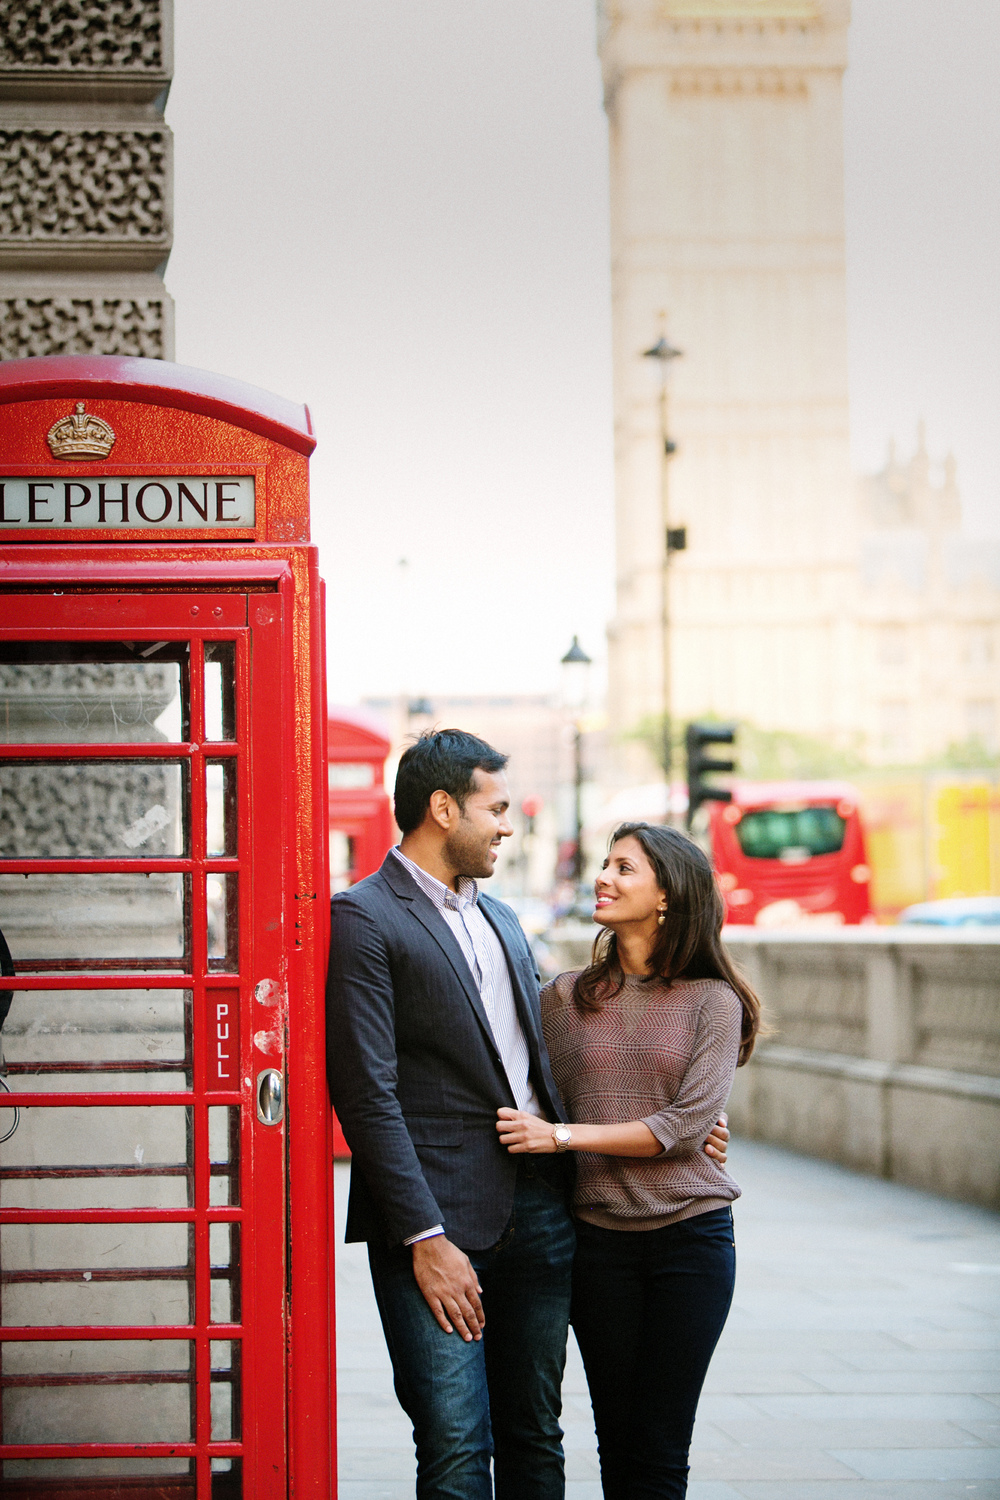 FLYTOGRAPHER Vacation Photographer in London